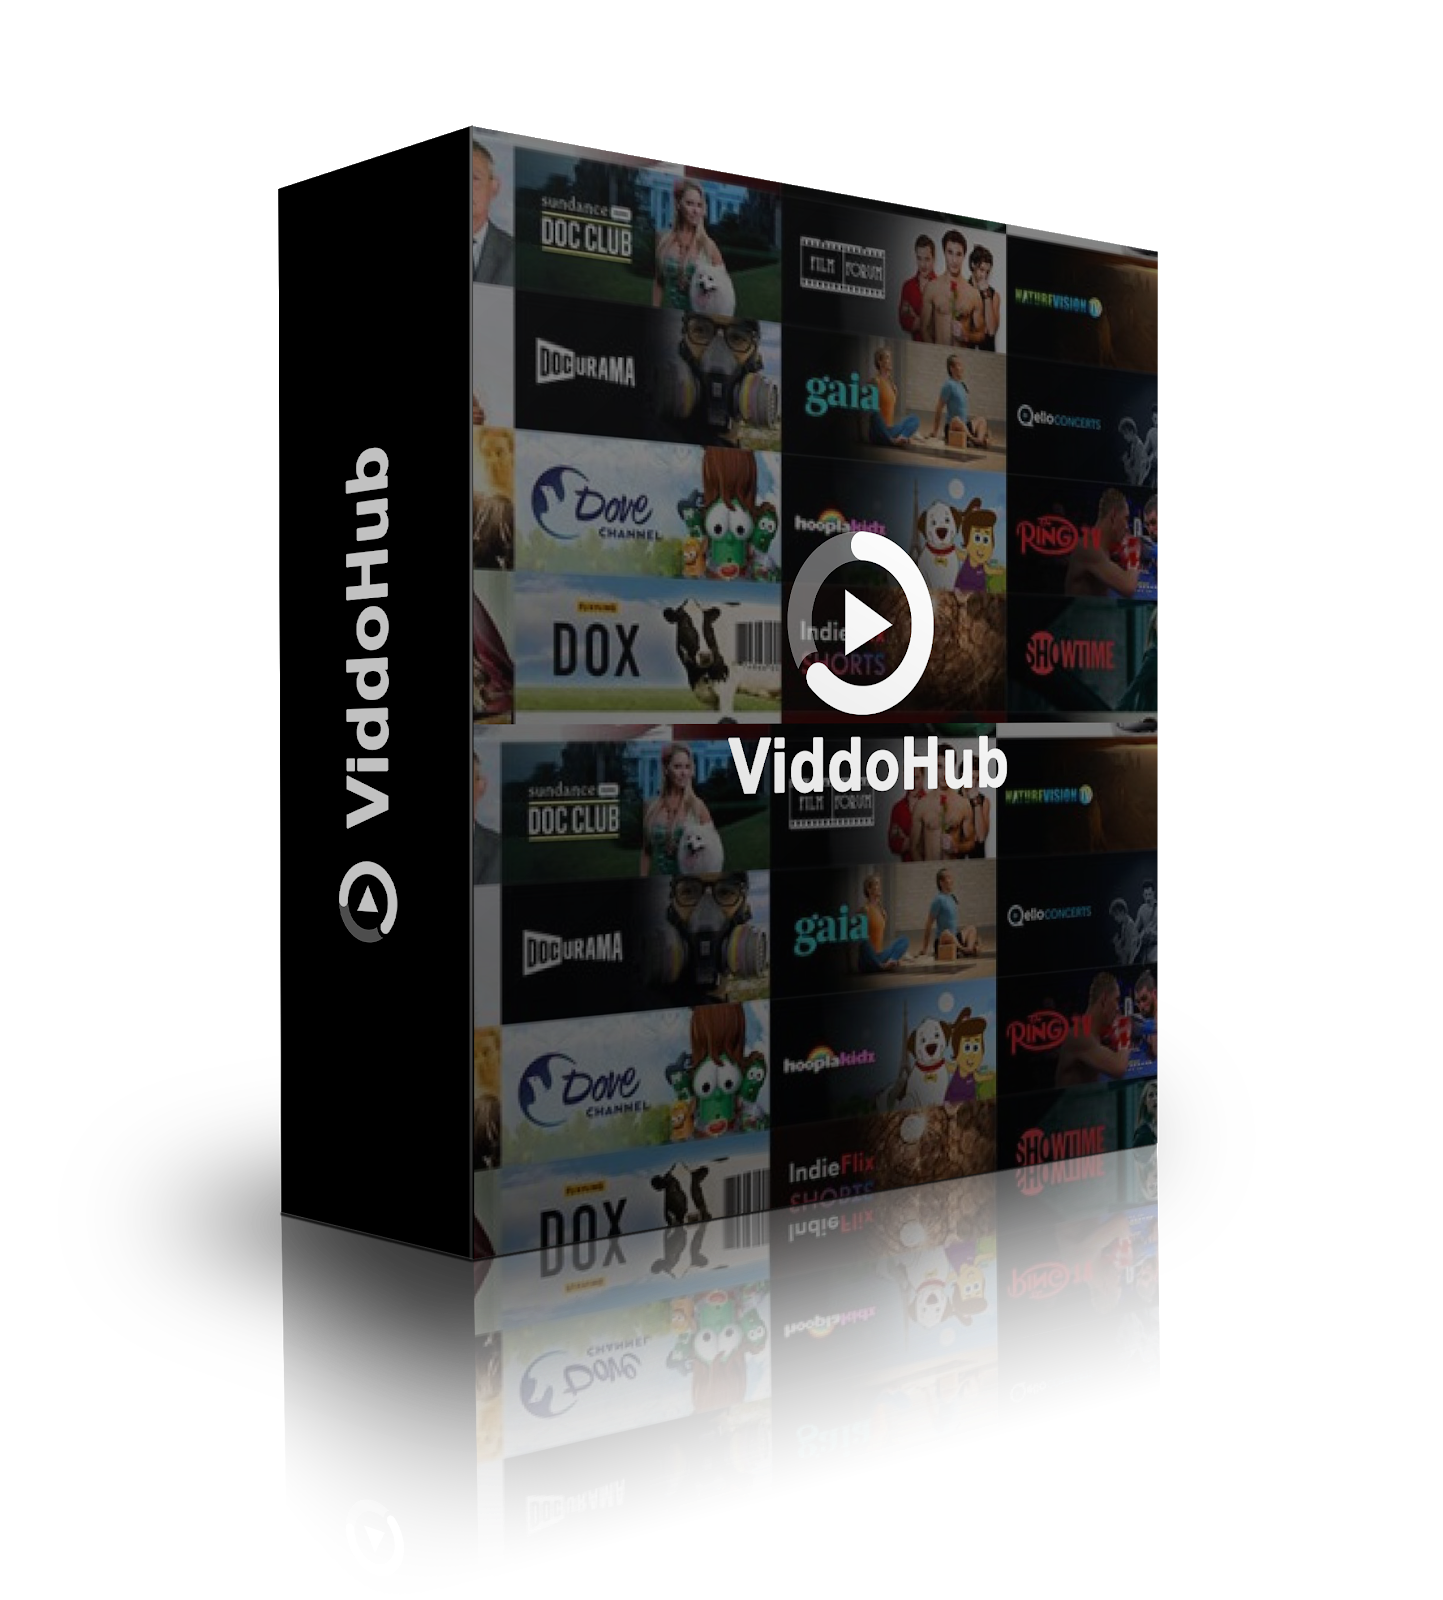 ViddoHub (Video Subscription Membership Platform)